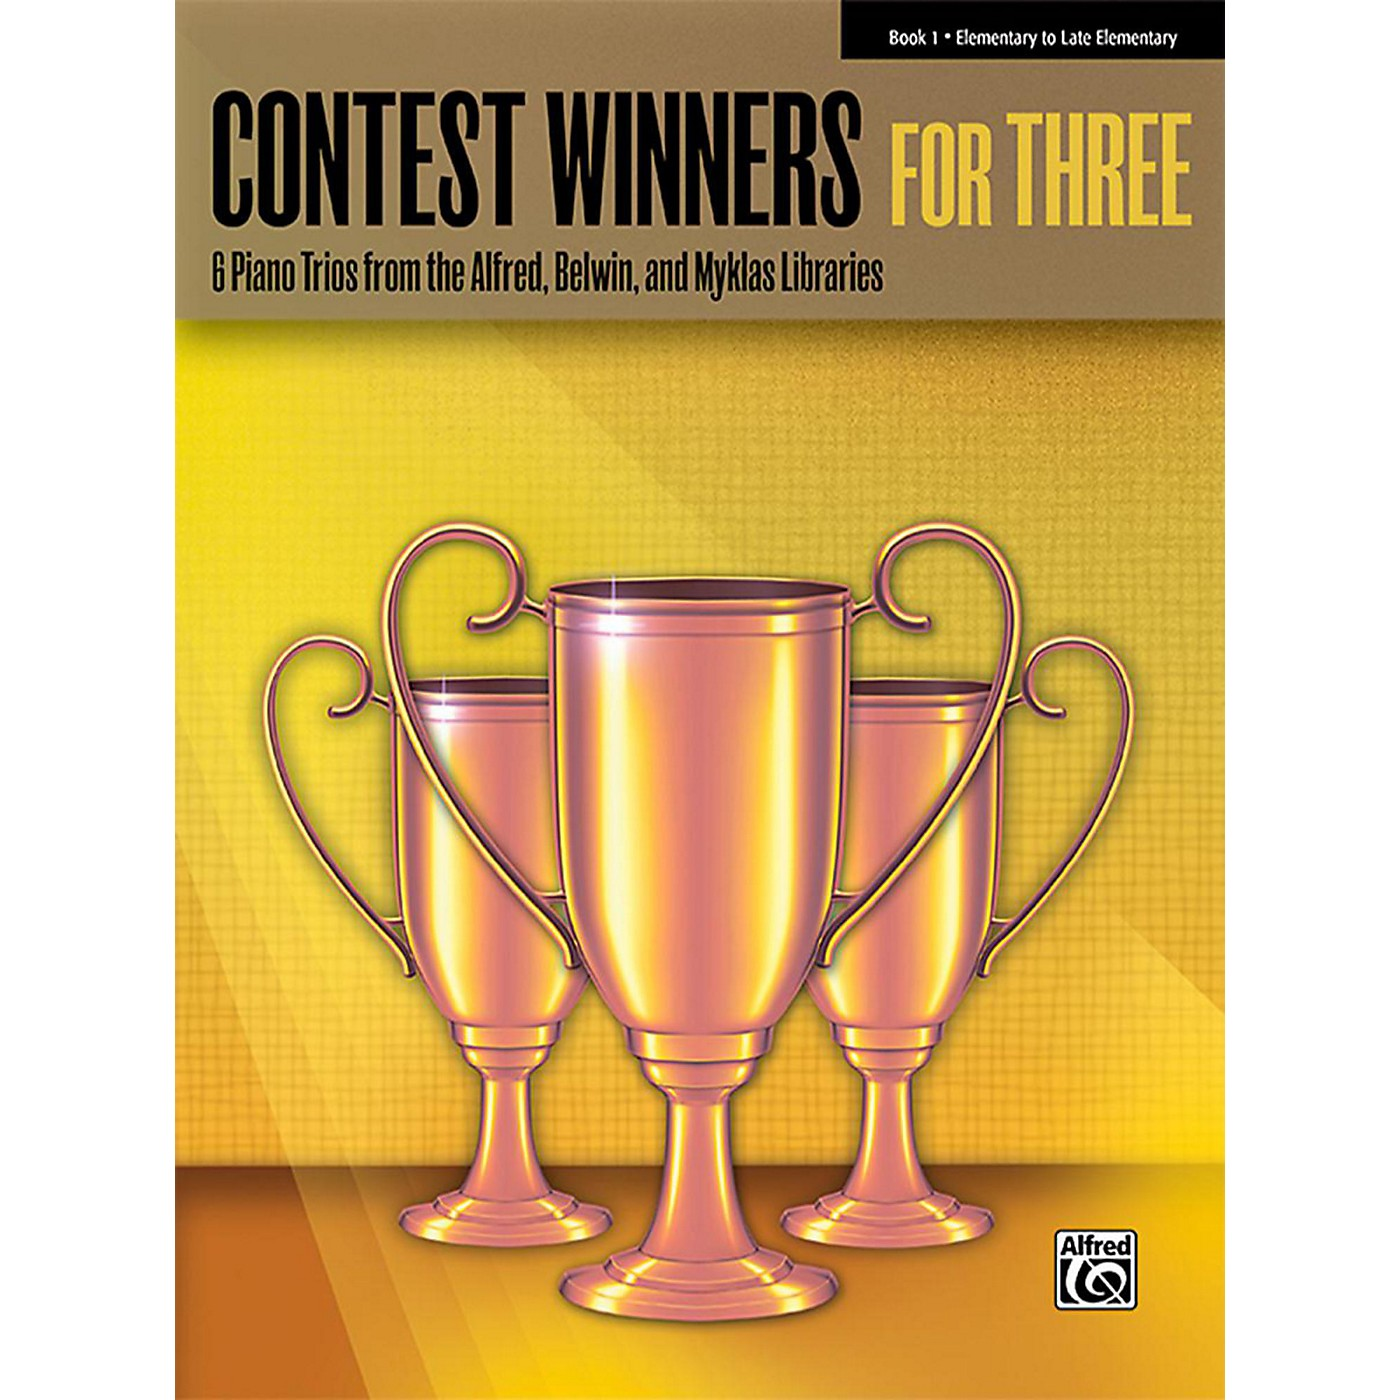 Alfred Contest Winners for Three Book 1 Elementary / Late Elementary Piano thumbnail